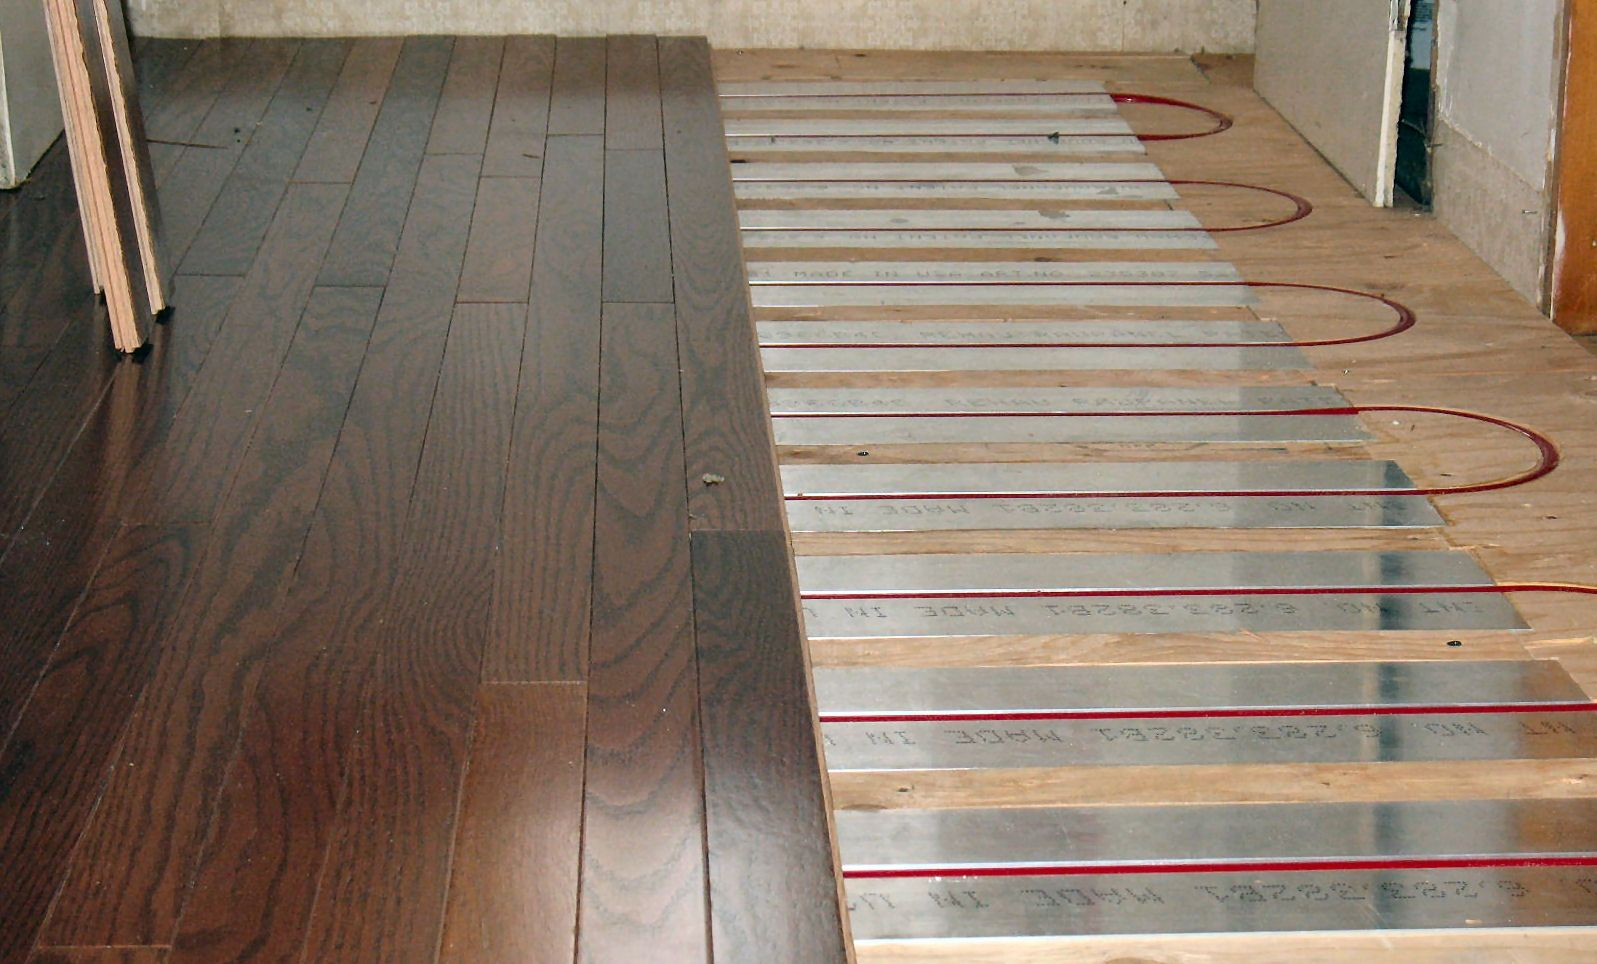 Radiant Floor Heating For Wooden Floor Surfaces Wood Flooring Is The Most Renewabl Hydronic Radiant Floor Heating Floor Heating Systems Radiant Floor Heating